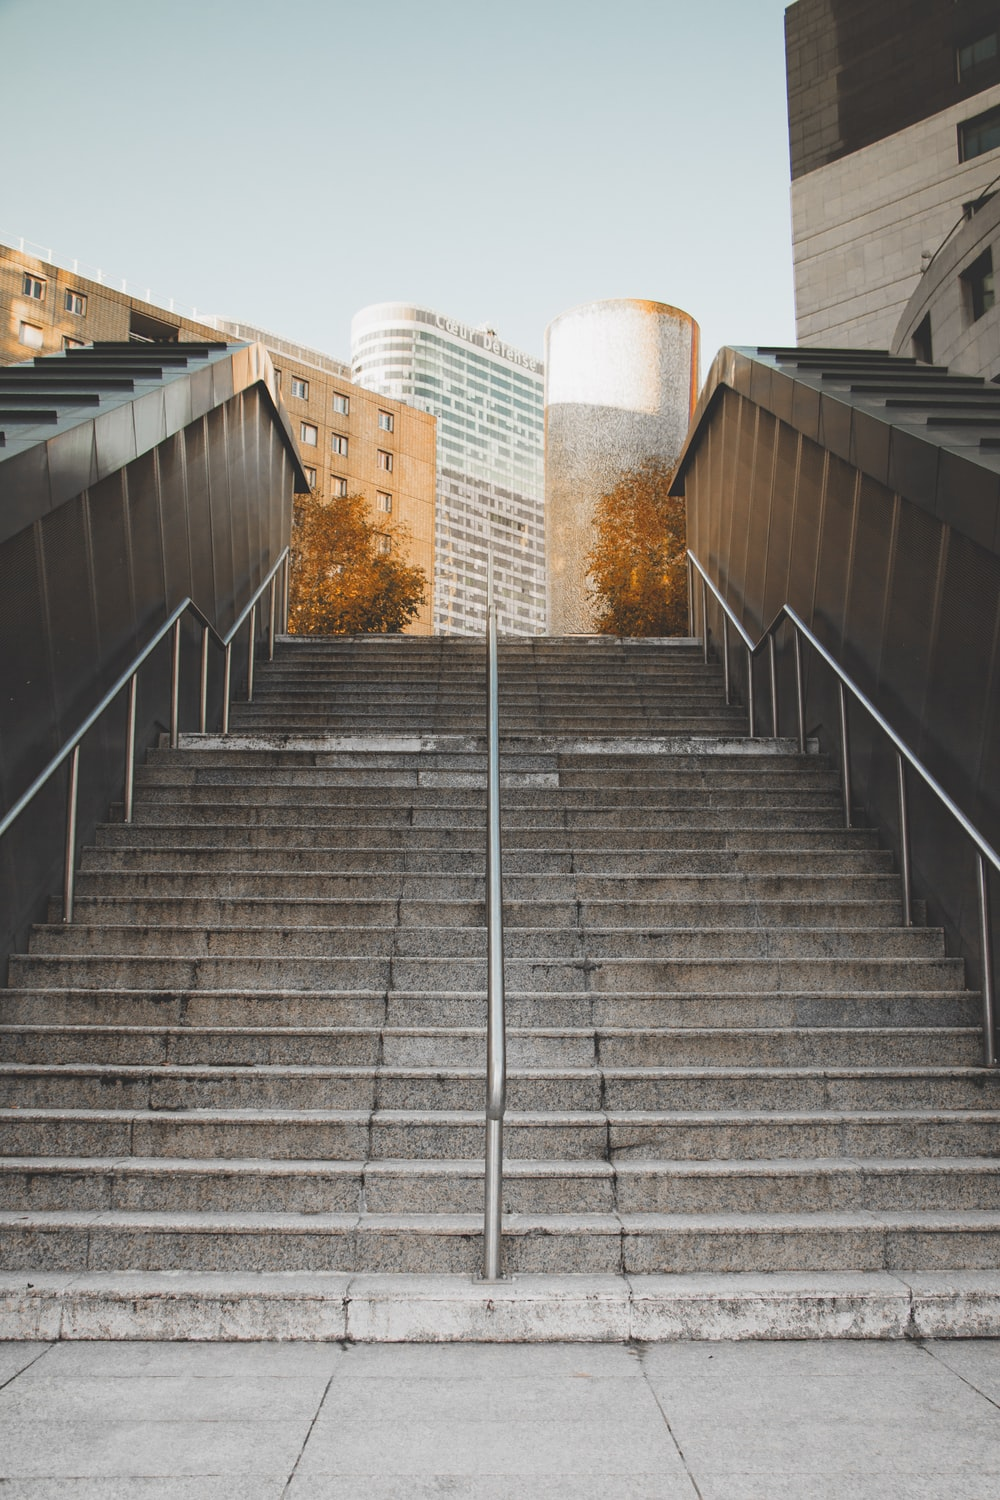 gray concrete stair outdoor during daytime